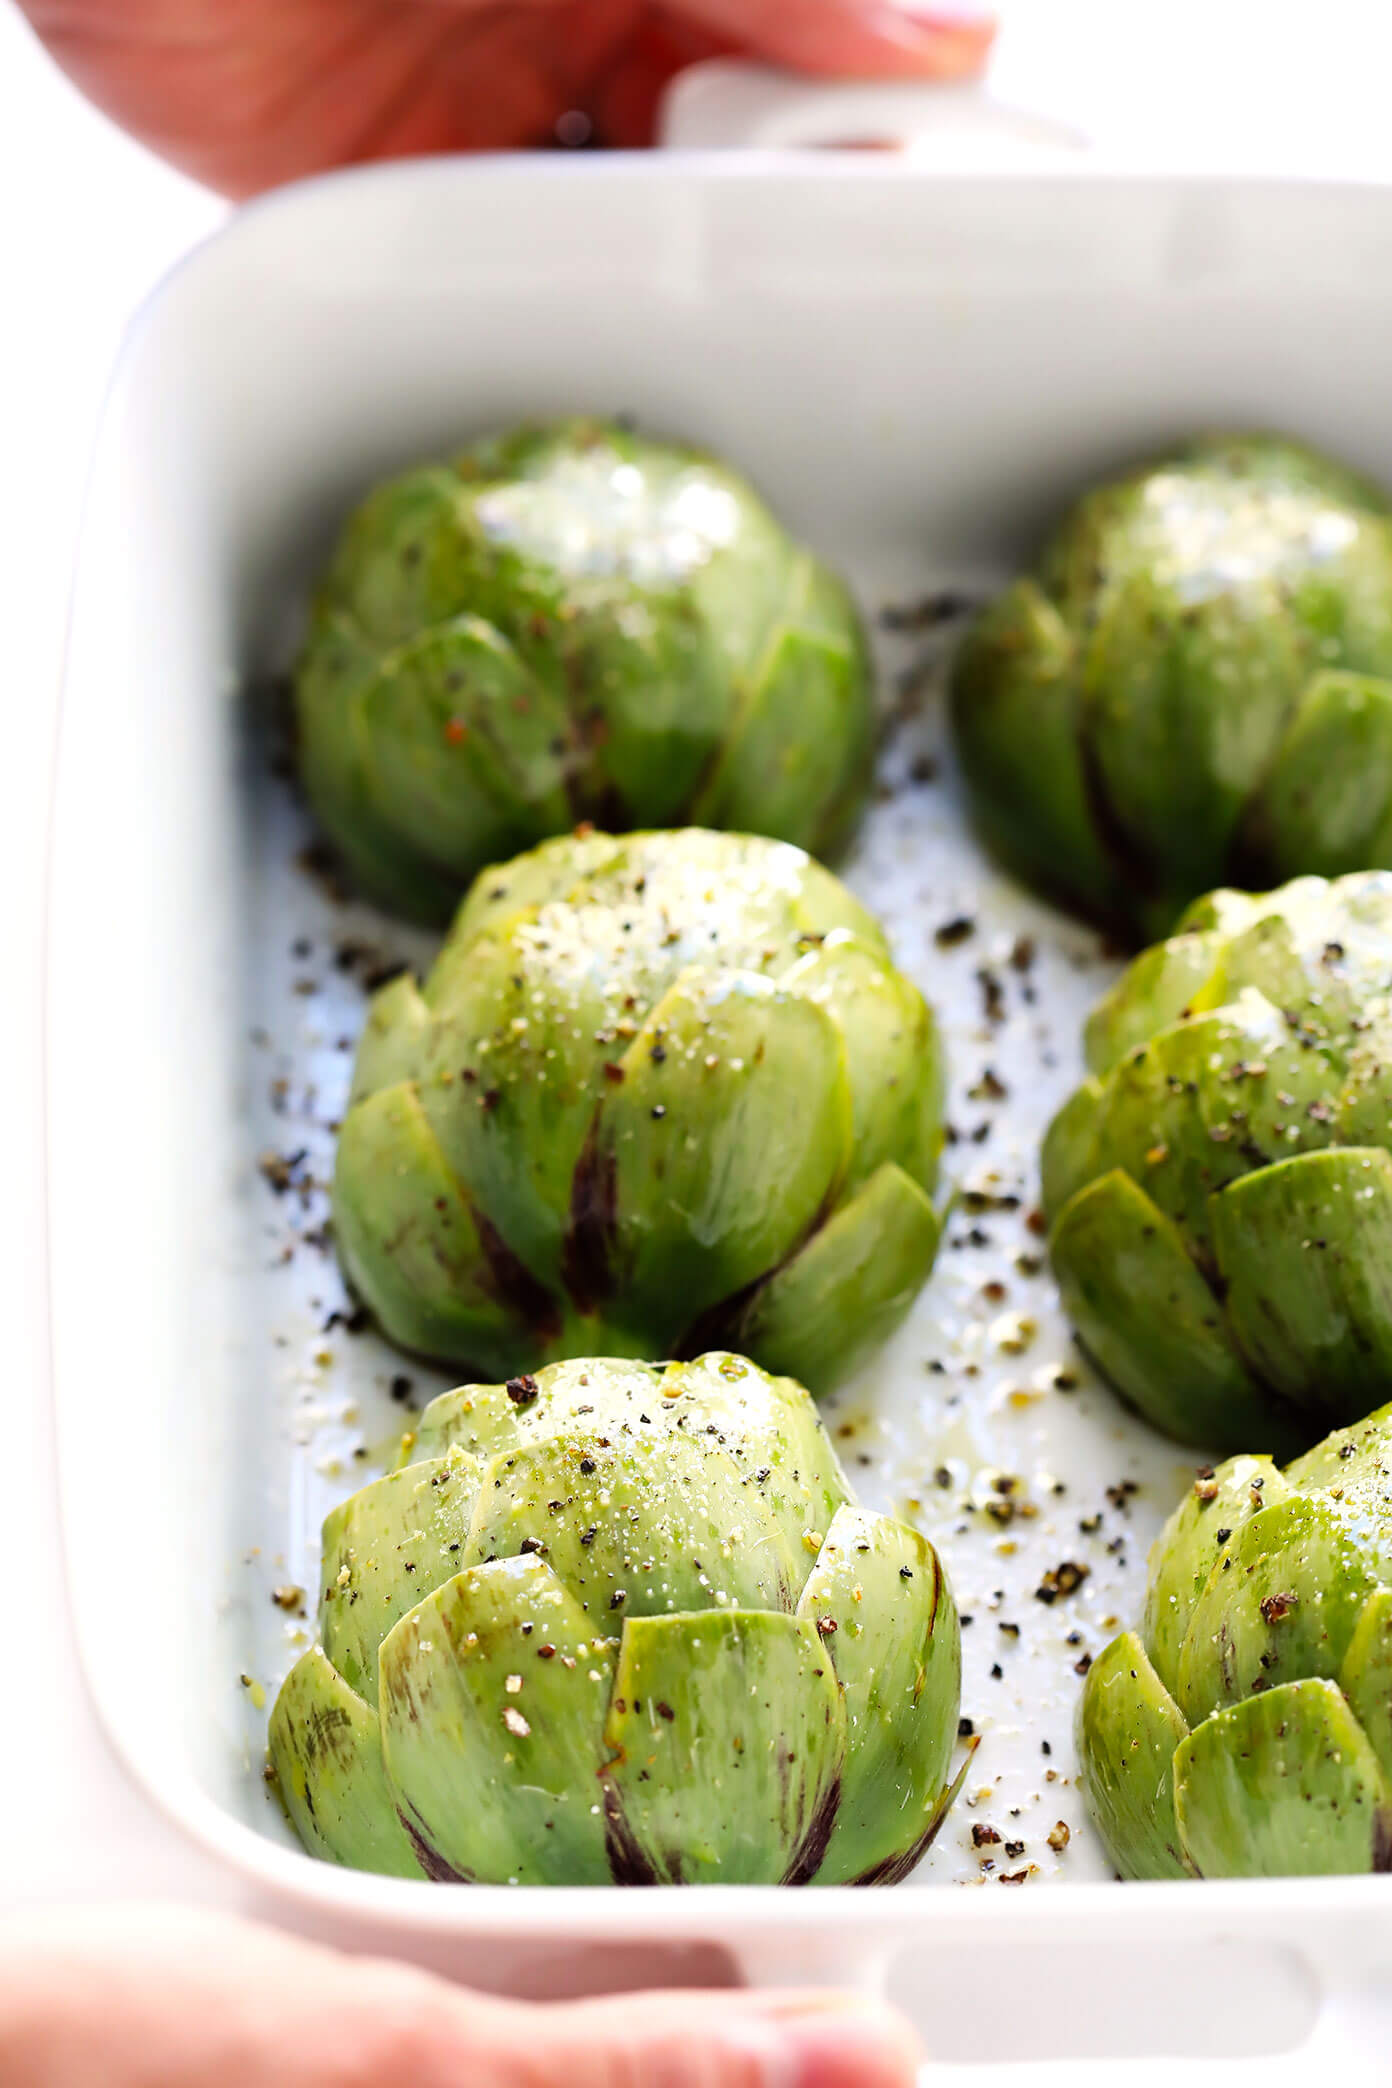 How To Make Roasted Artichokes